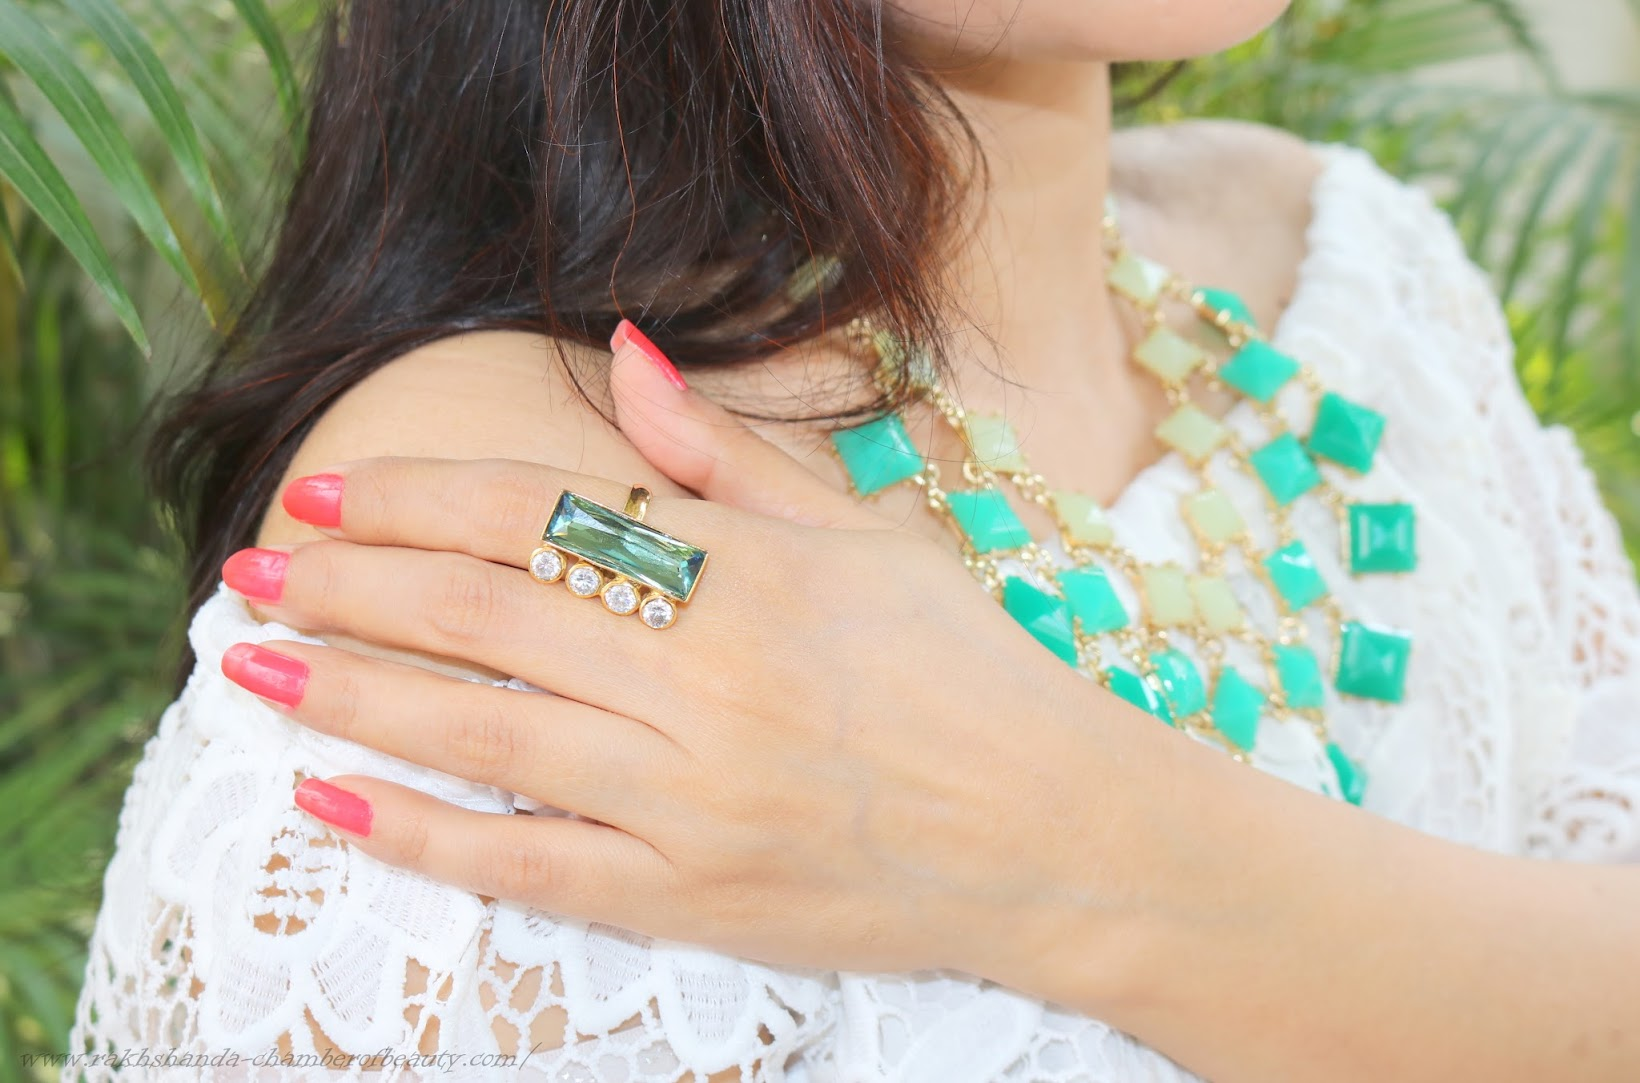 Ziveg Fashion Jewellery- My Picks, #ChangeForGood, Indian fashion blogger, Chamber of Beauty